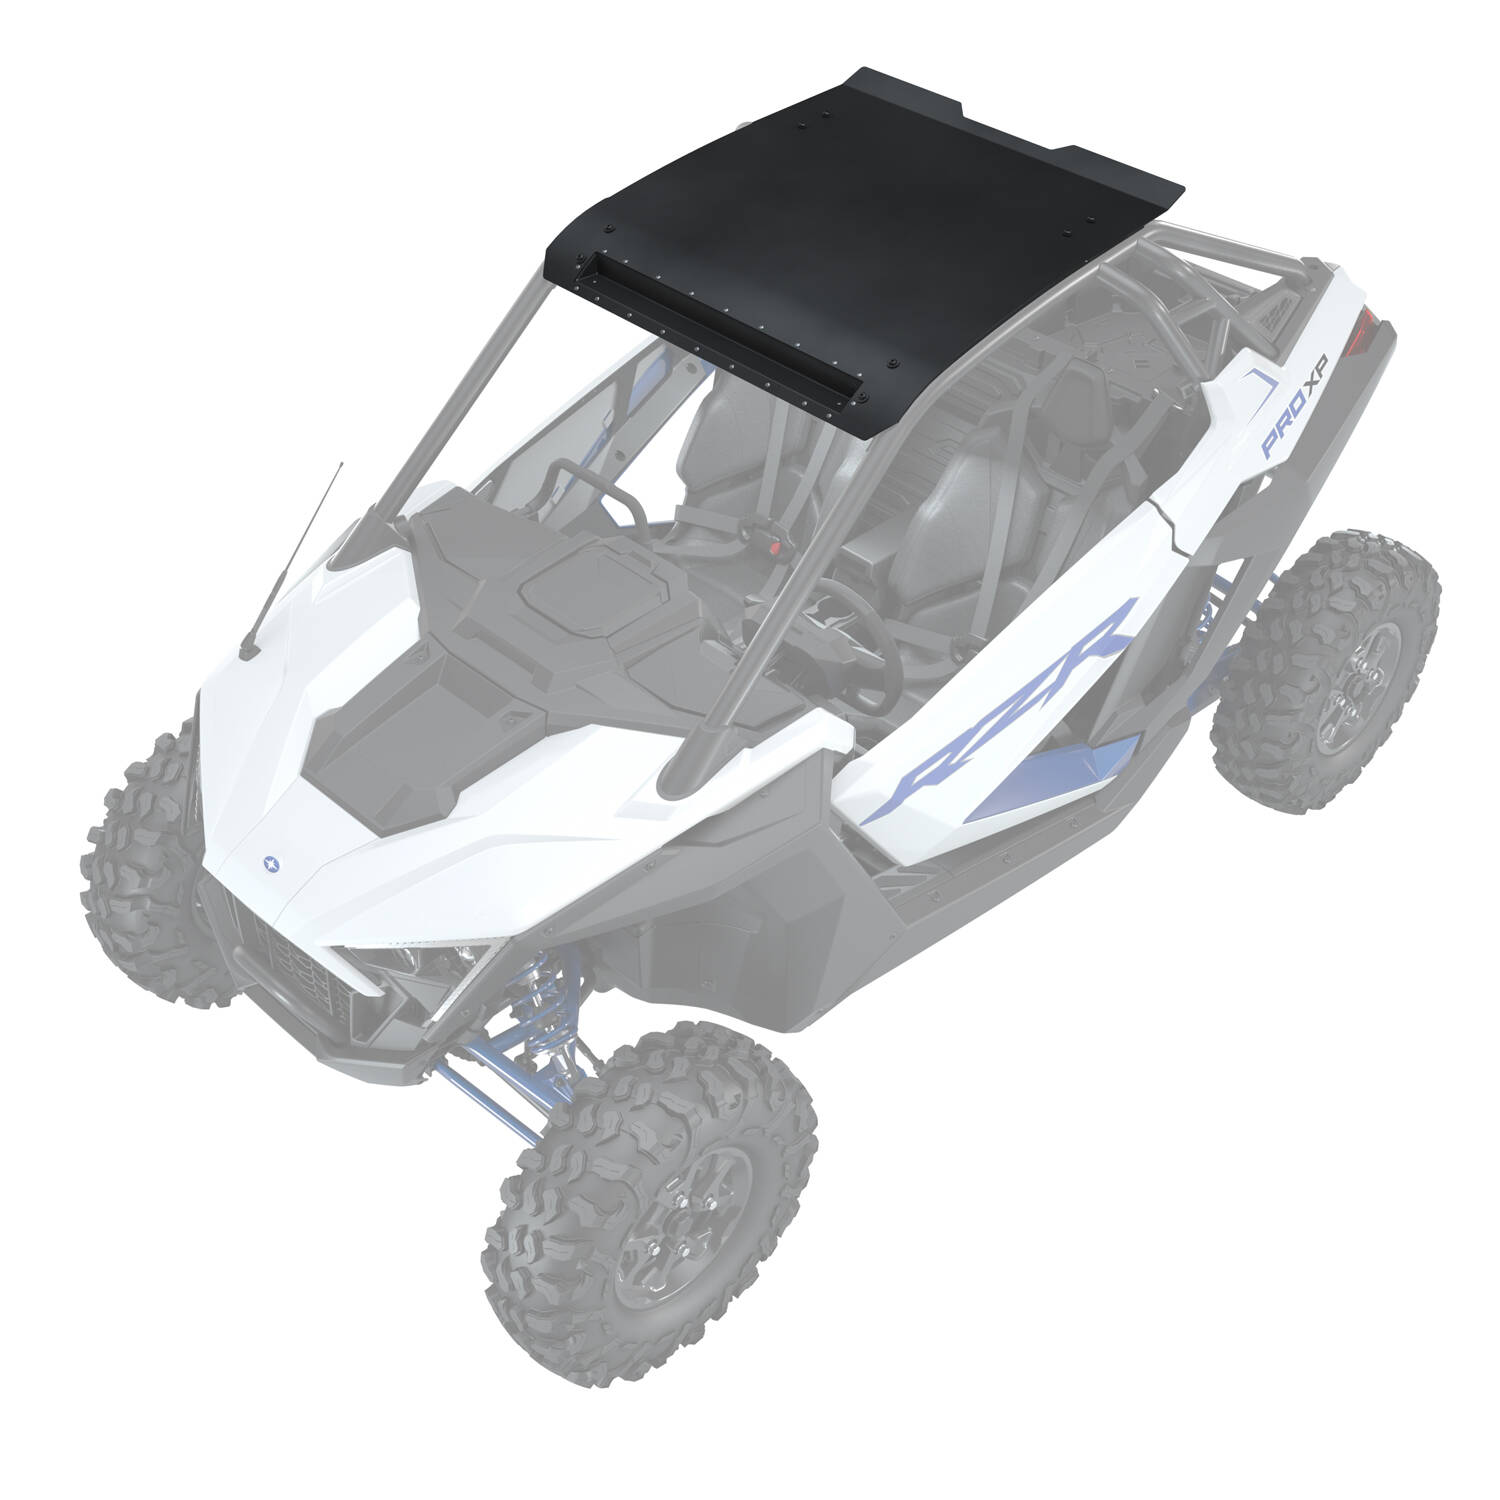 2-Seat Aluminum Roof with Integrated Light Bar Pocket